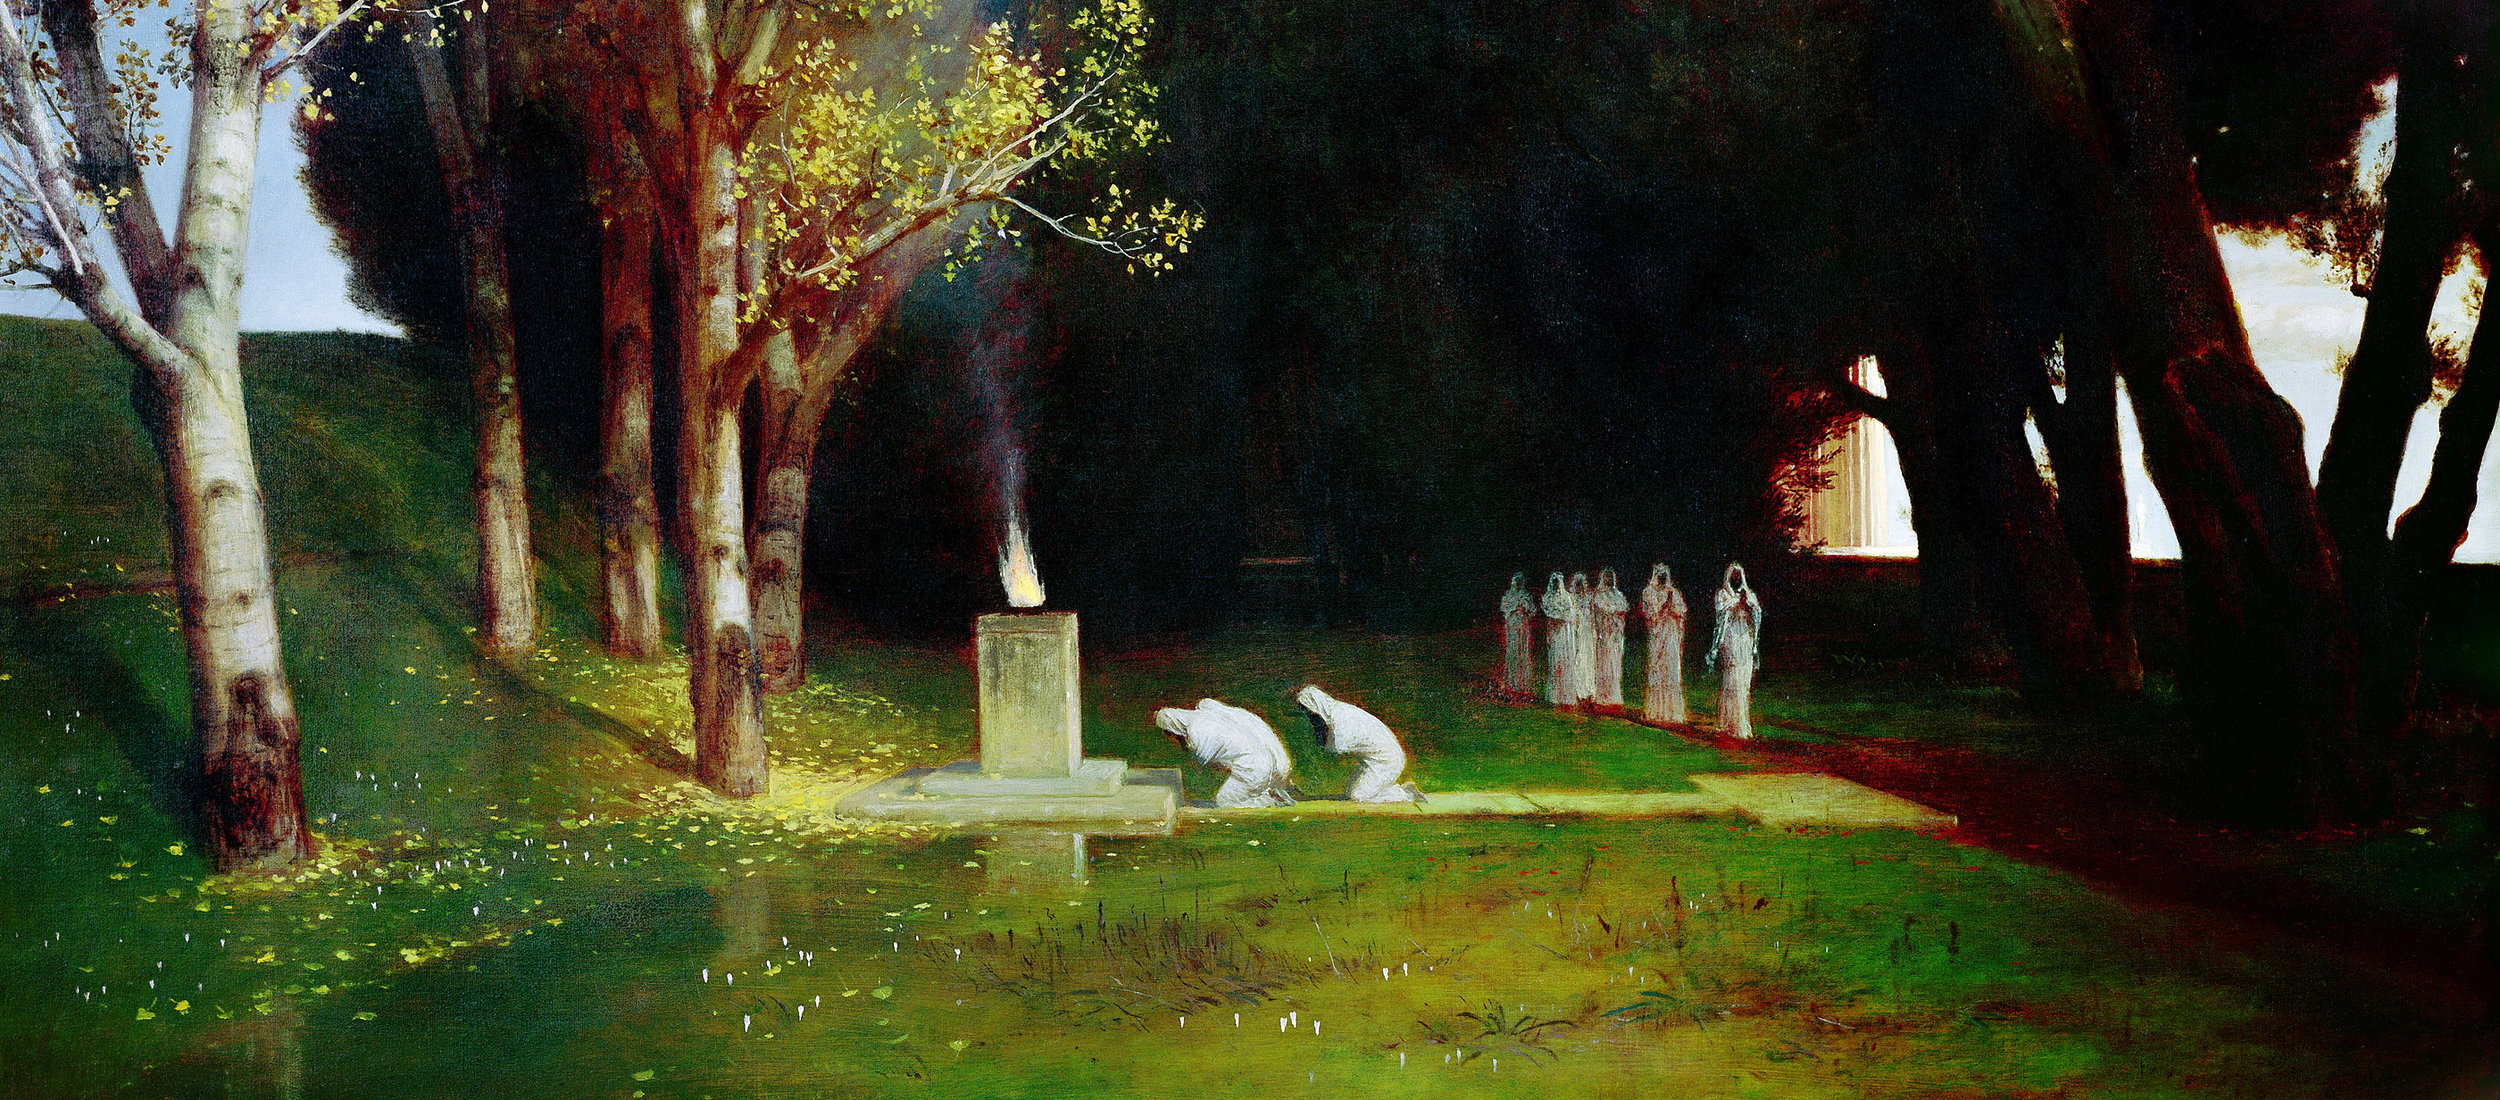 The Sacred Grove.—Arnold Böcklin, 1882